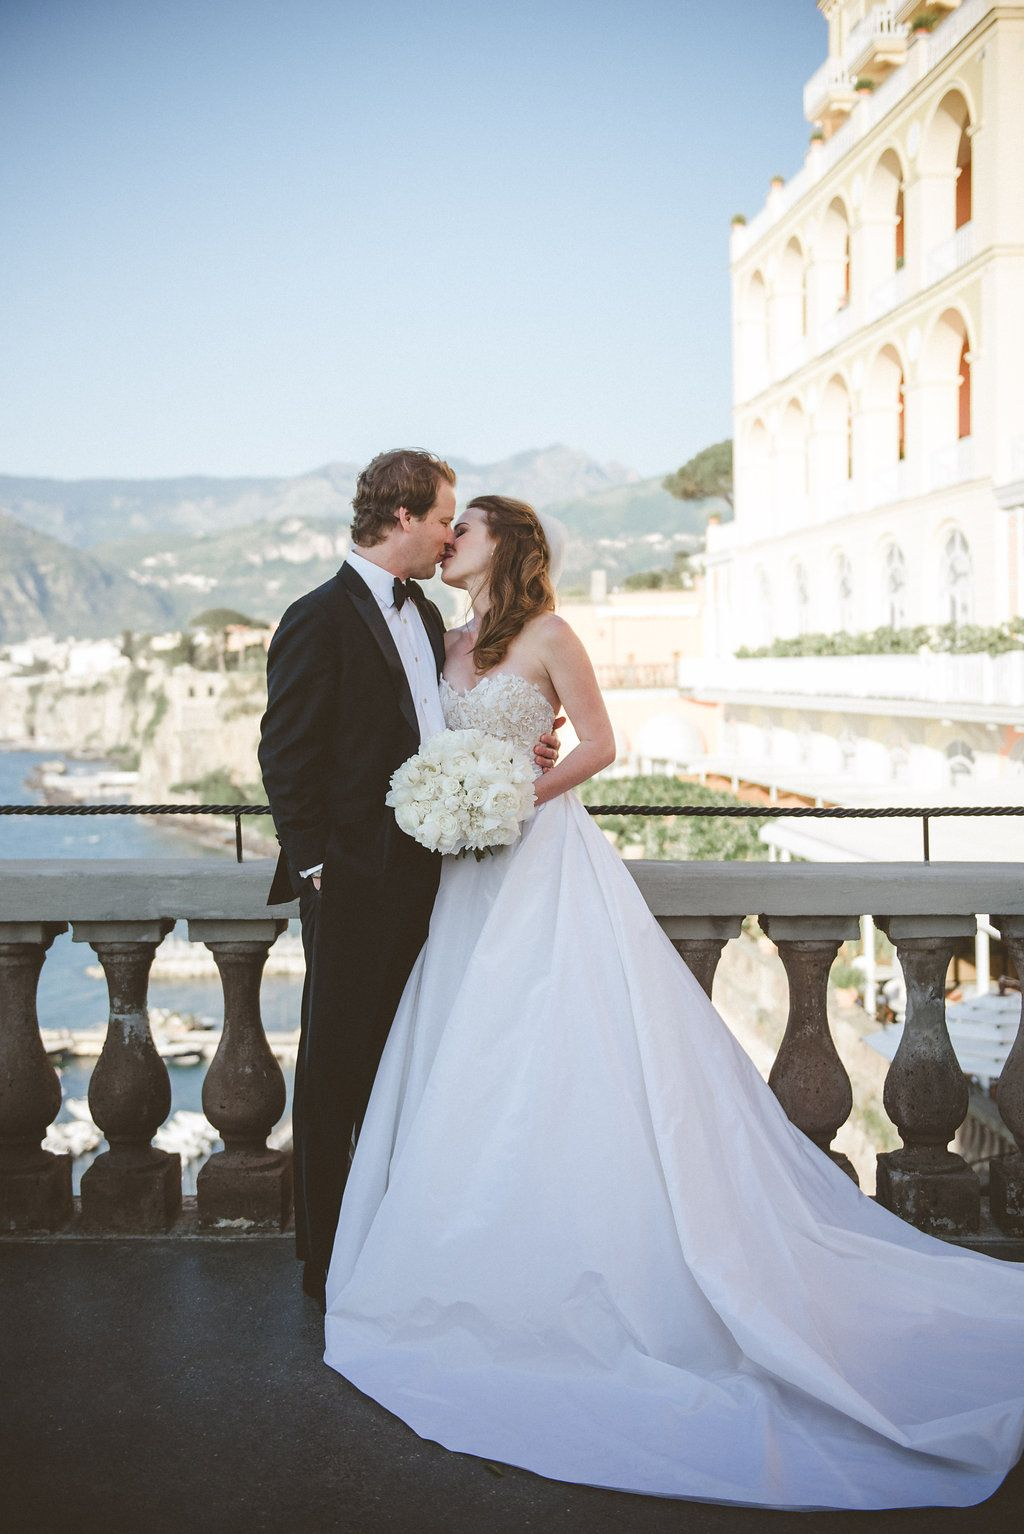 Elegant white u gold destination wedding with reem acra bridal gown